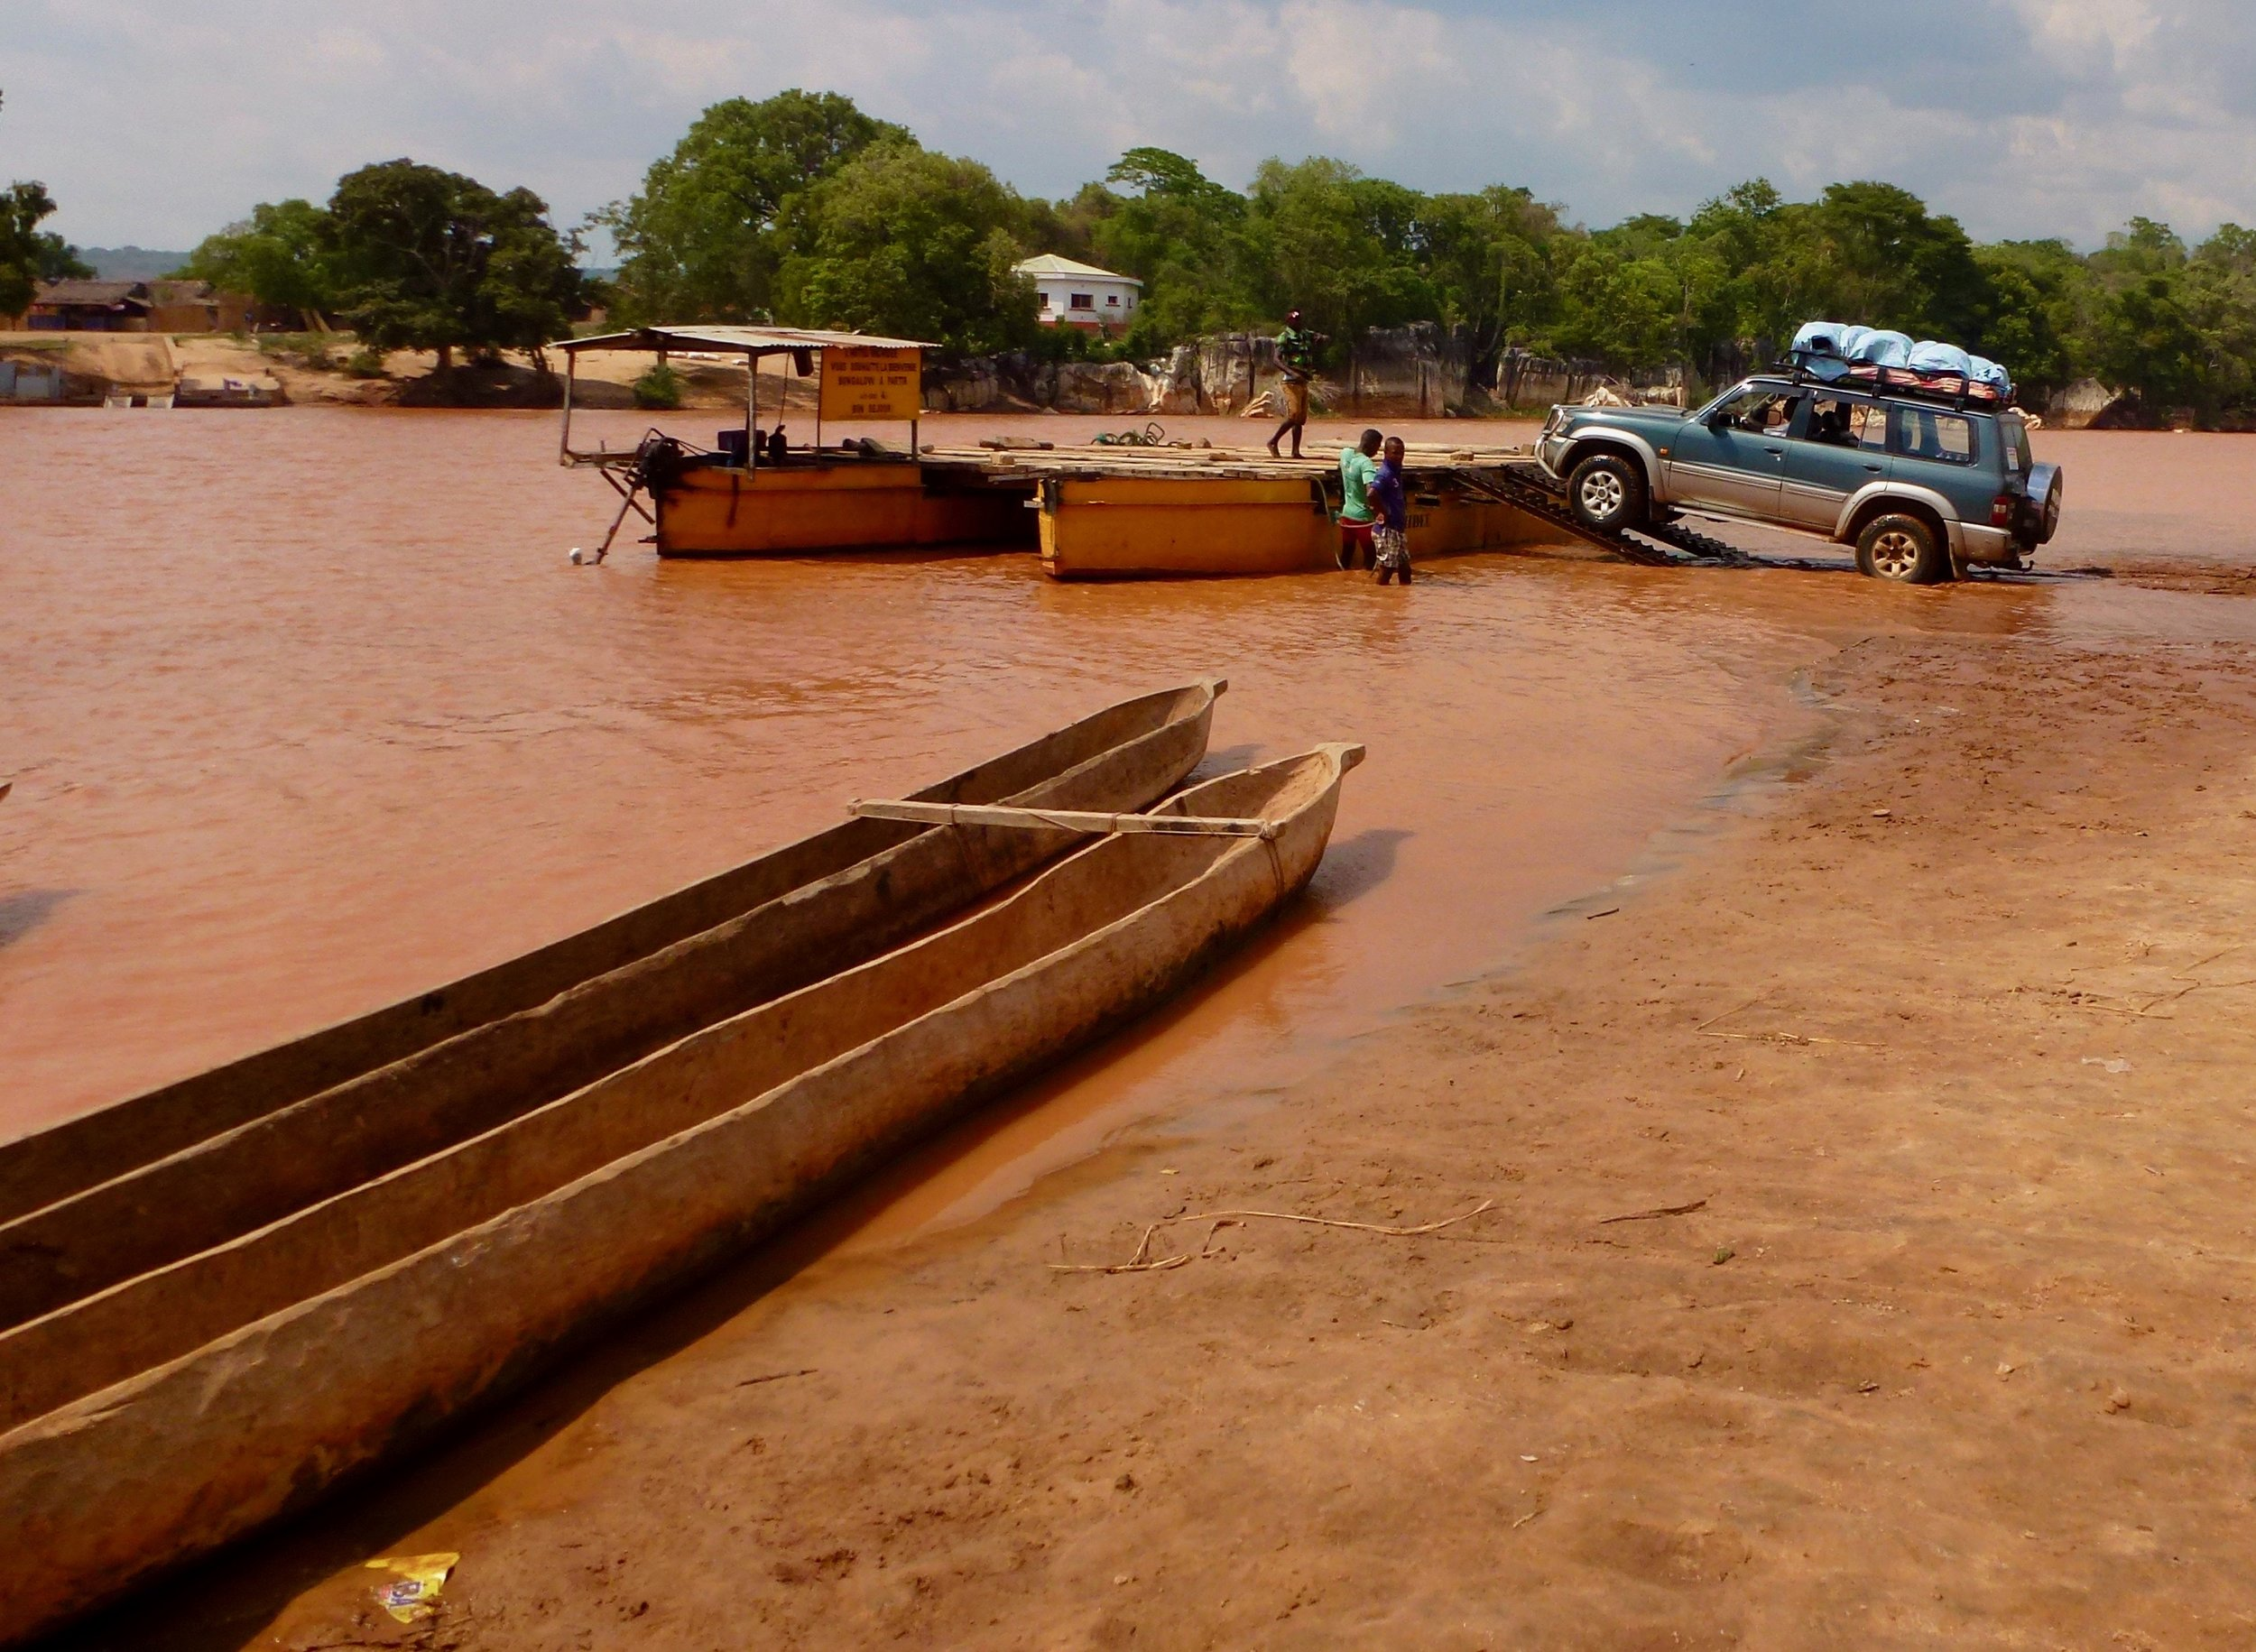 Our jeep was loaded onto a ferry to cross the river, as there are no bridges. Notice the red river. It's colored by the soil that has washed down from where forests once stood.